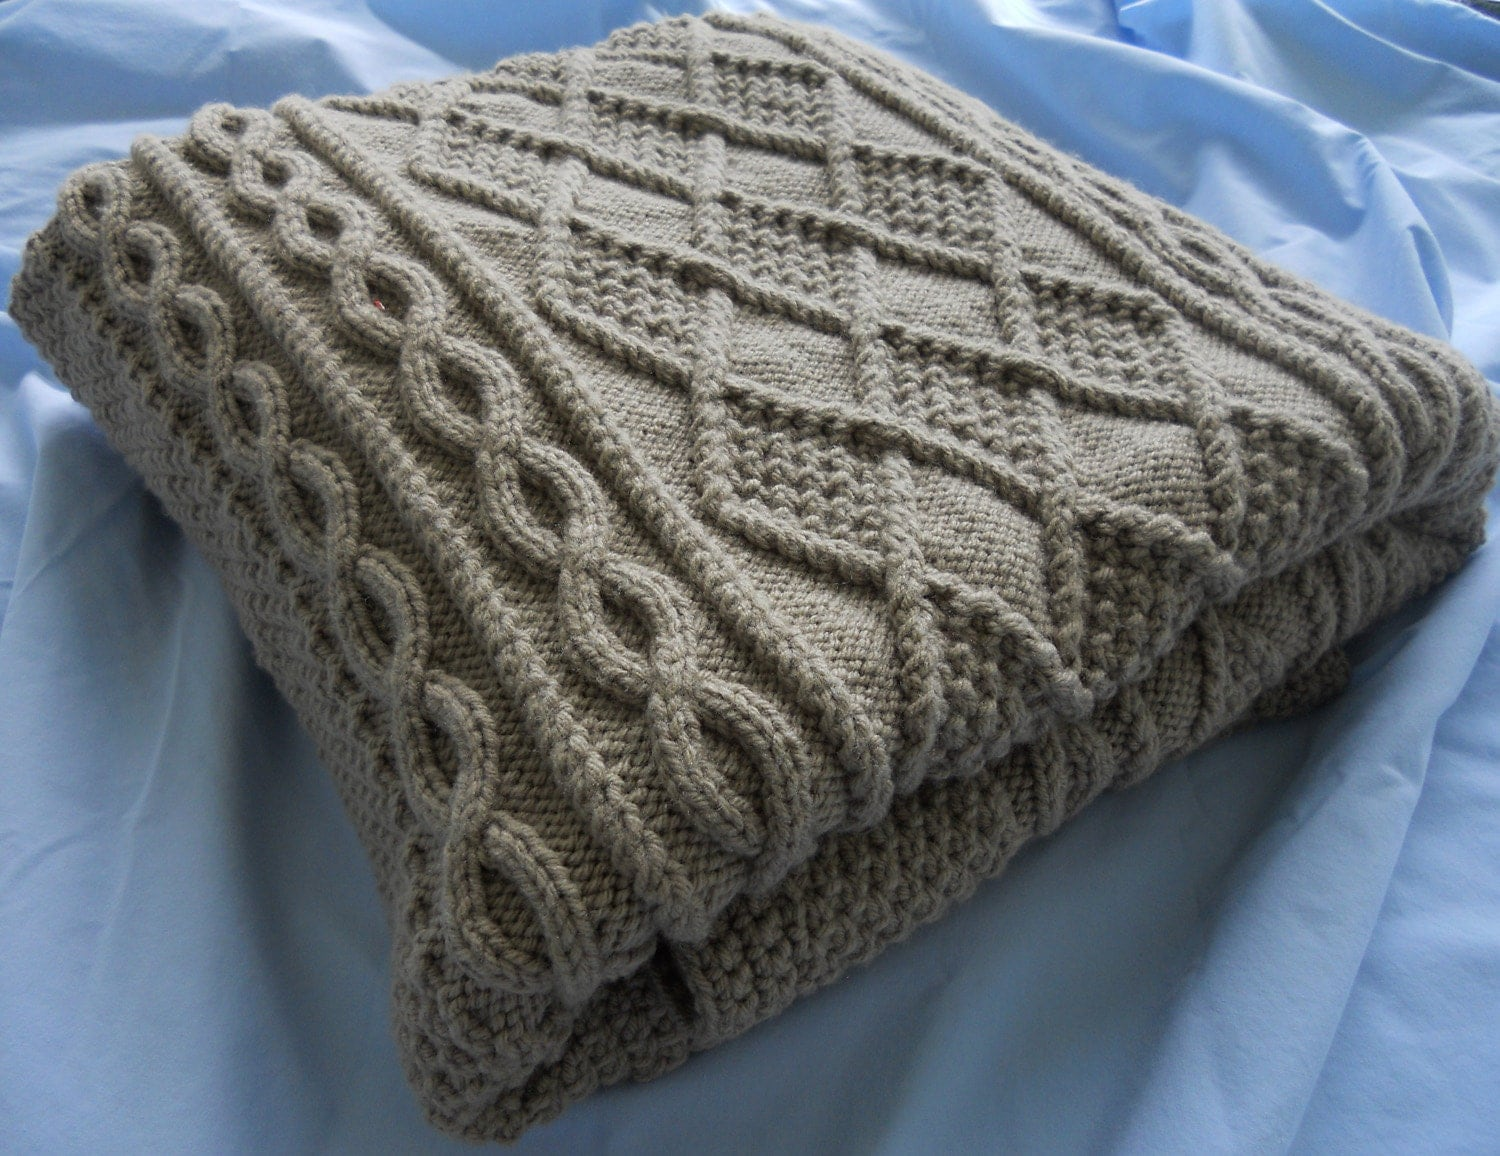 Knitting Chunky Blanket : Chunky hand knit blanket taupe